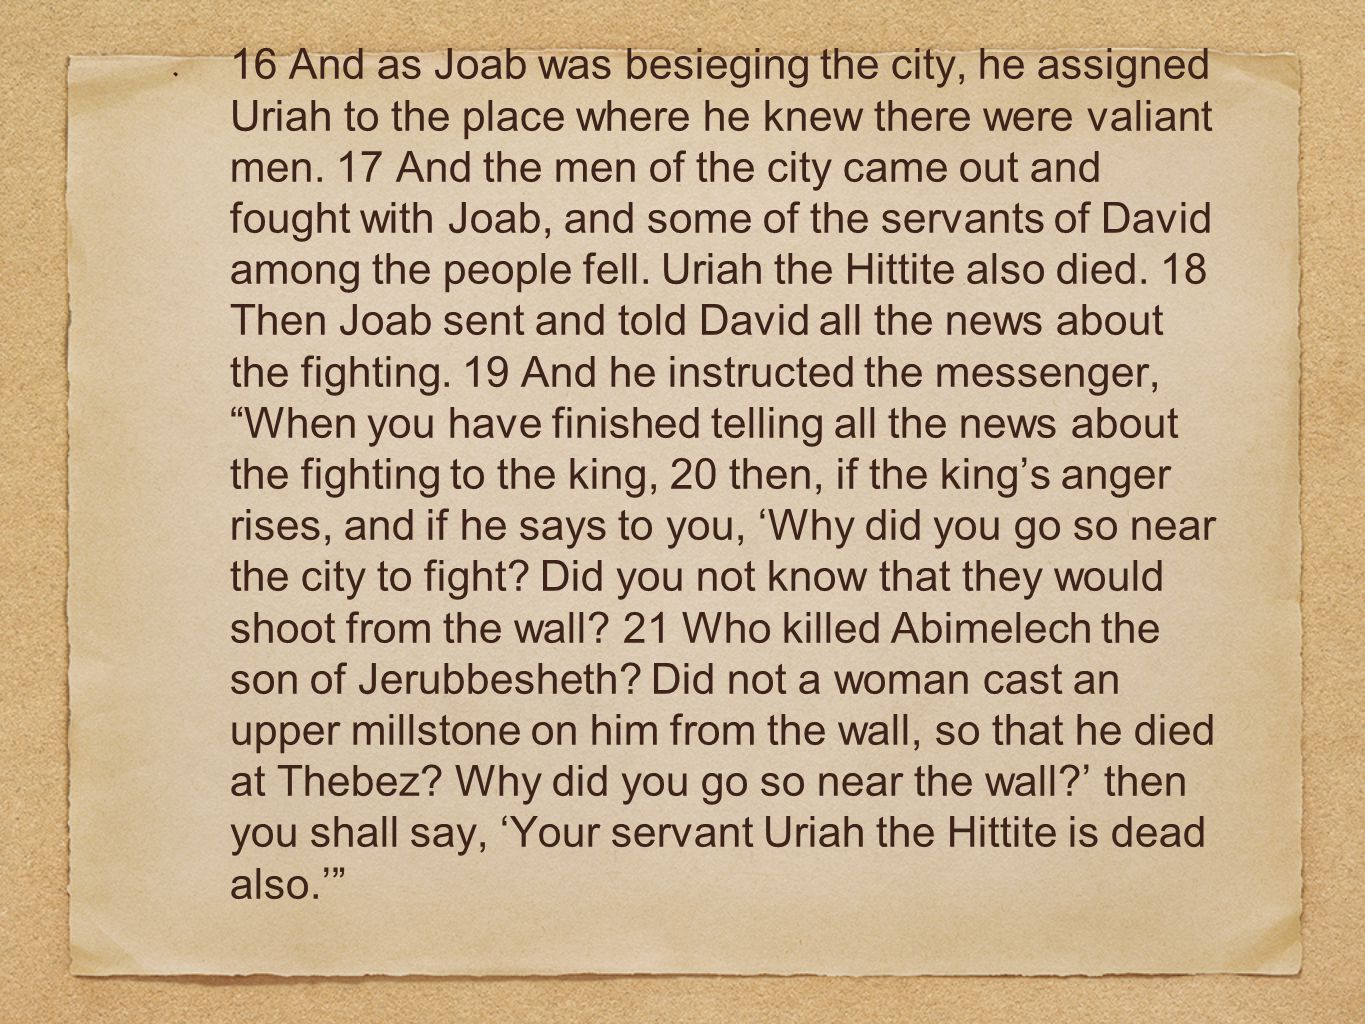 16 And as Joab was besieging the city, he assigned Uriah to the place where he knew there were valiant men. 17 And the men of the city came out and fo